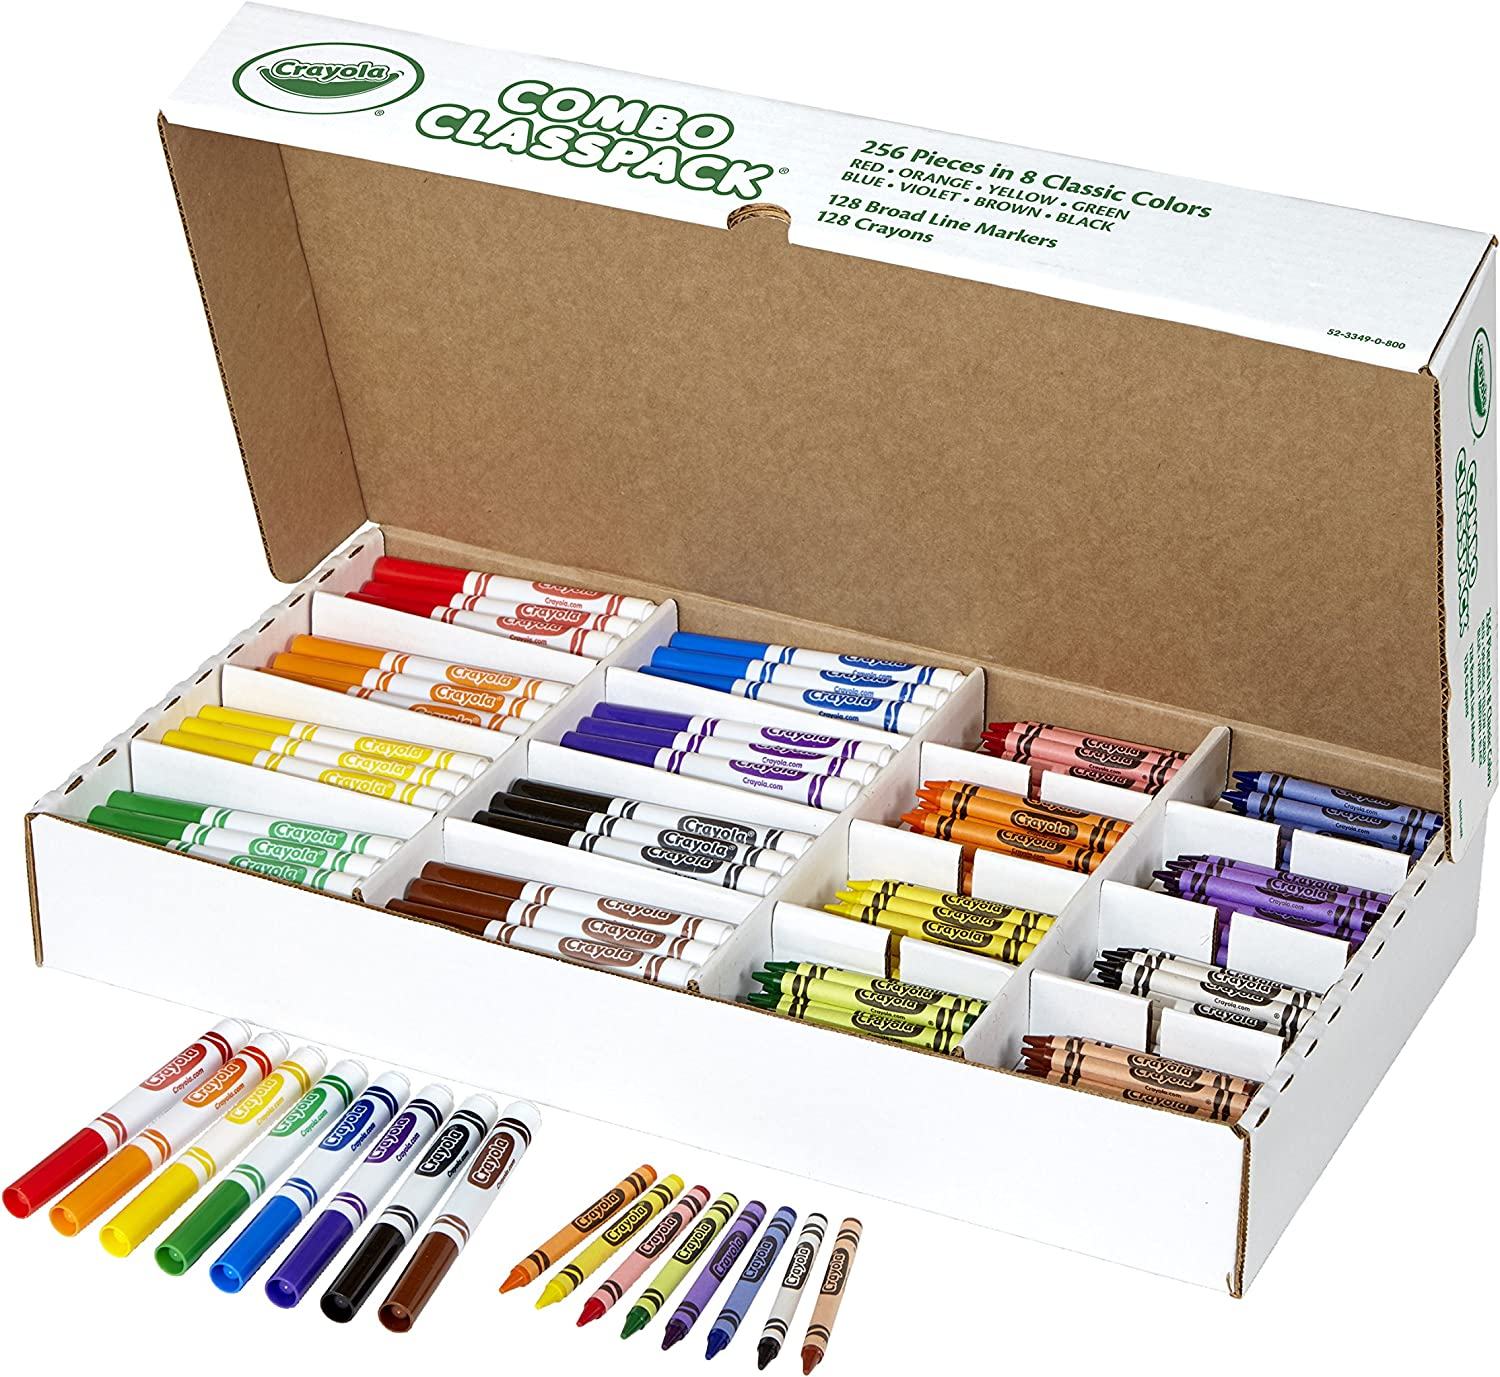 Crayola Bulk Markers and Max 55% OFF Classpack Sale Special Price 256 Count Crayons